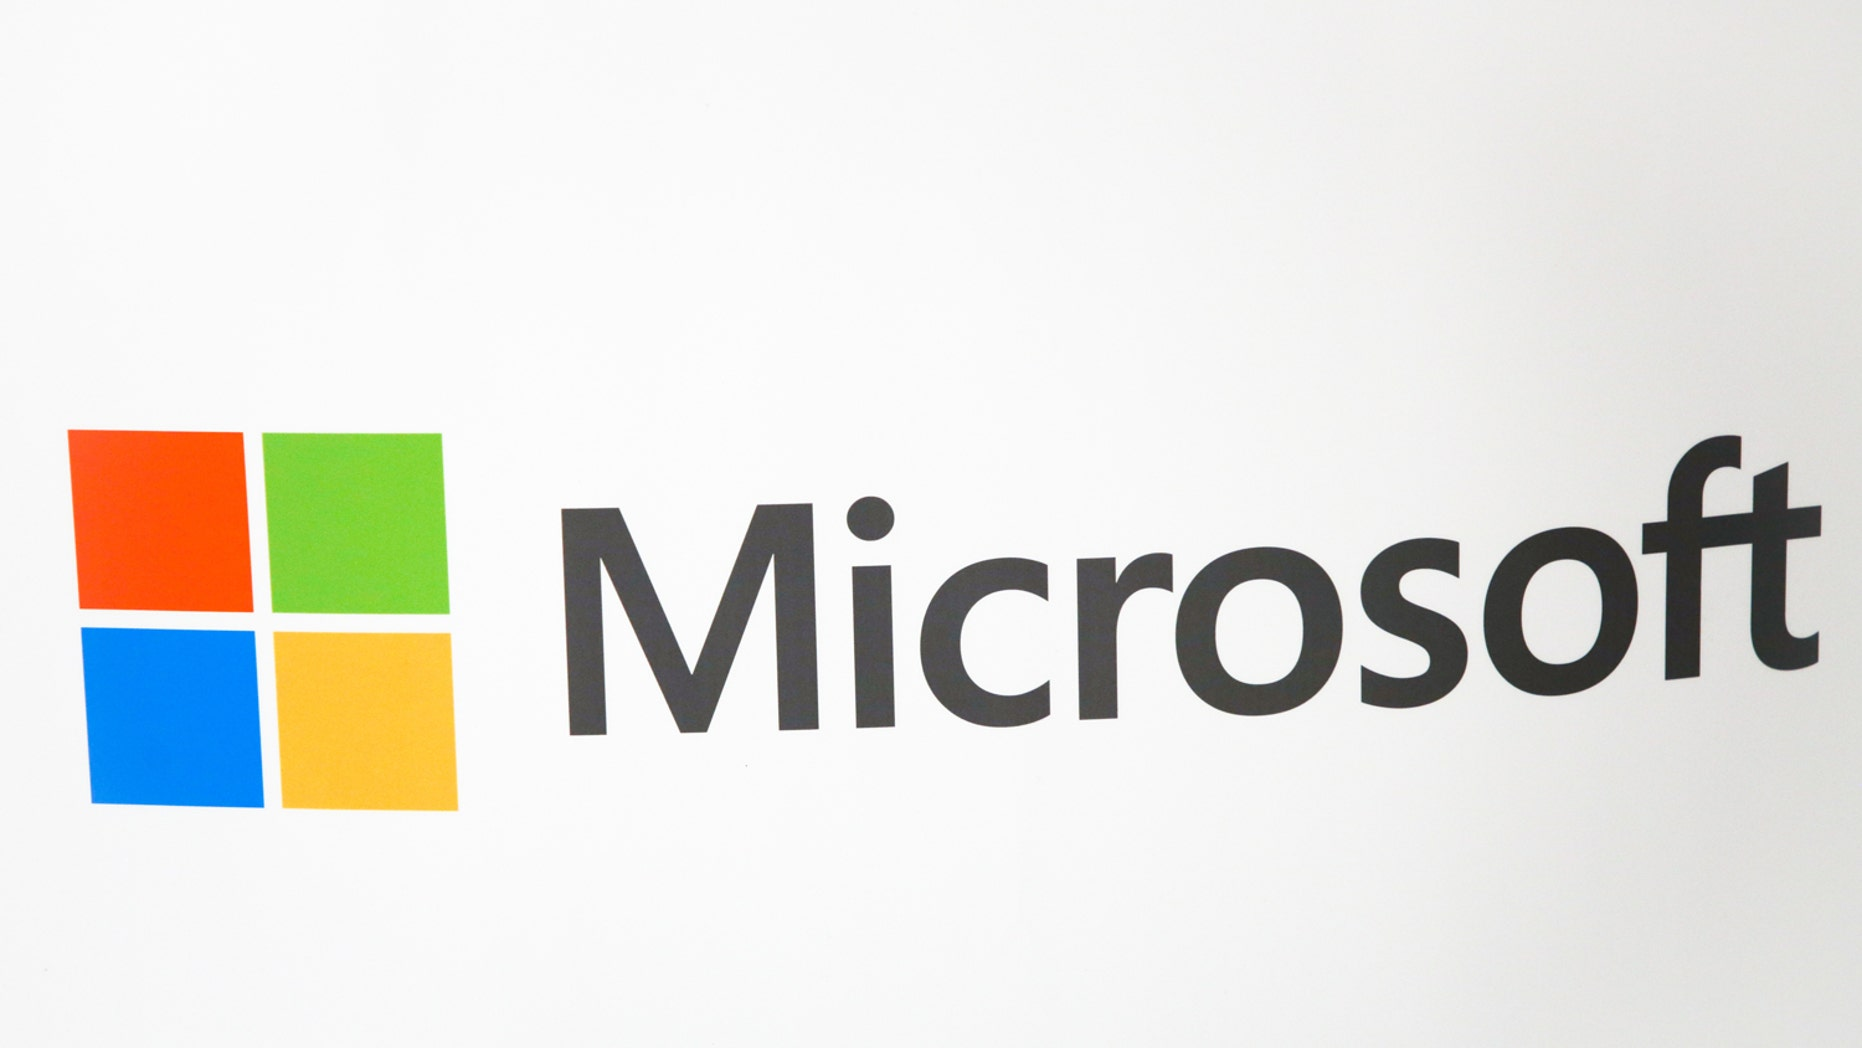 Westlake Legal Group microsoft-logo-getty-images Microsoft's web-based email services breached PCmag fox-news/tech/companies/microsoft fnc/tech fnc article 18299418-6aa3-504e-b45e-ac0fca2d29e1